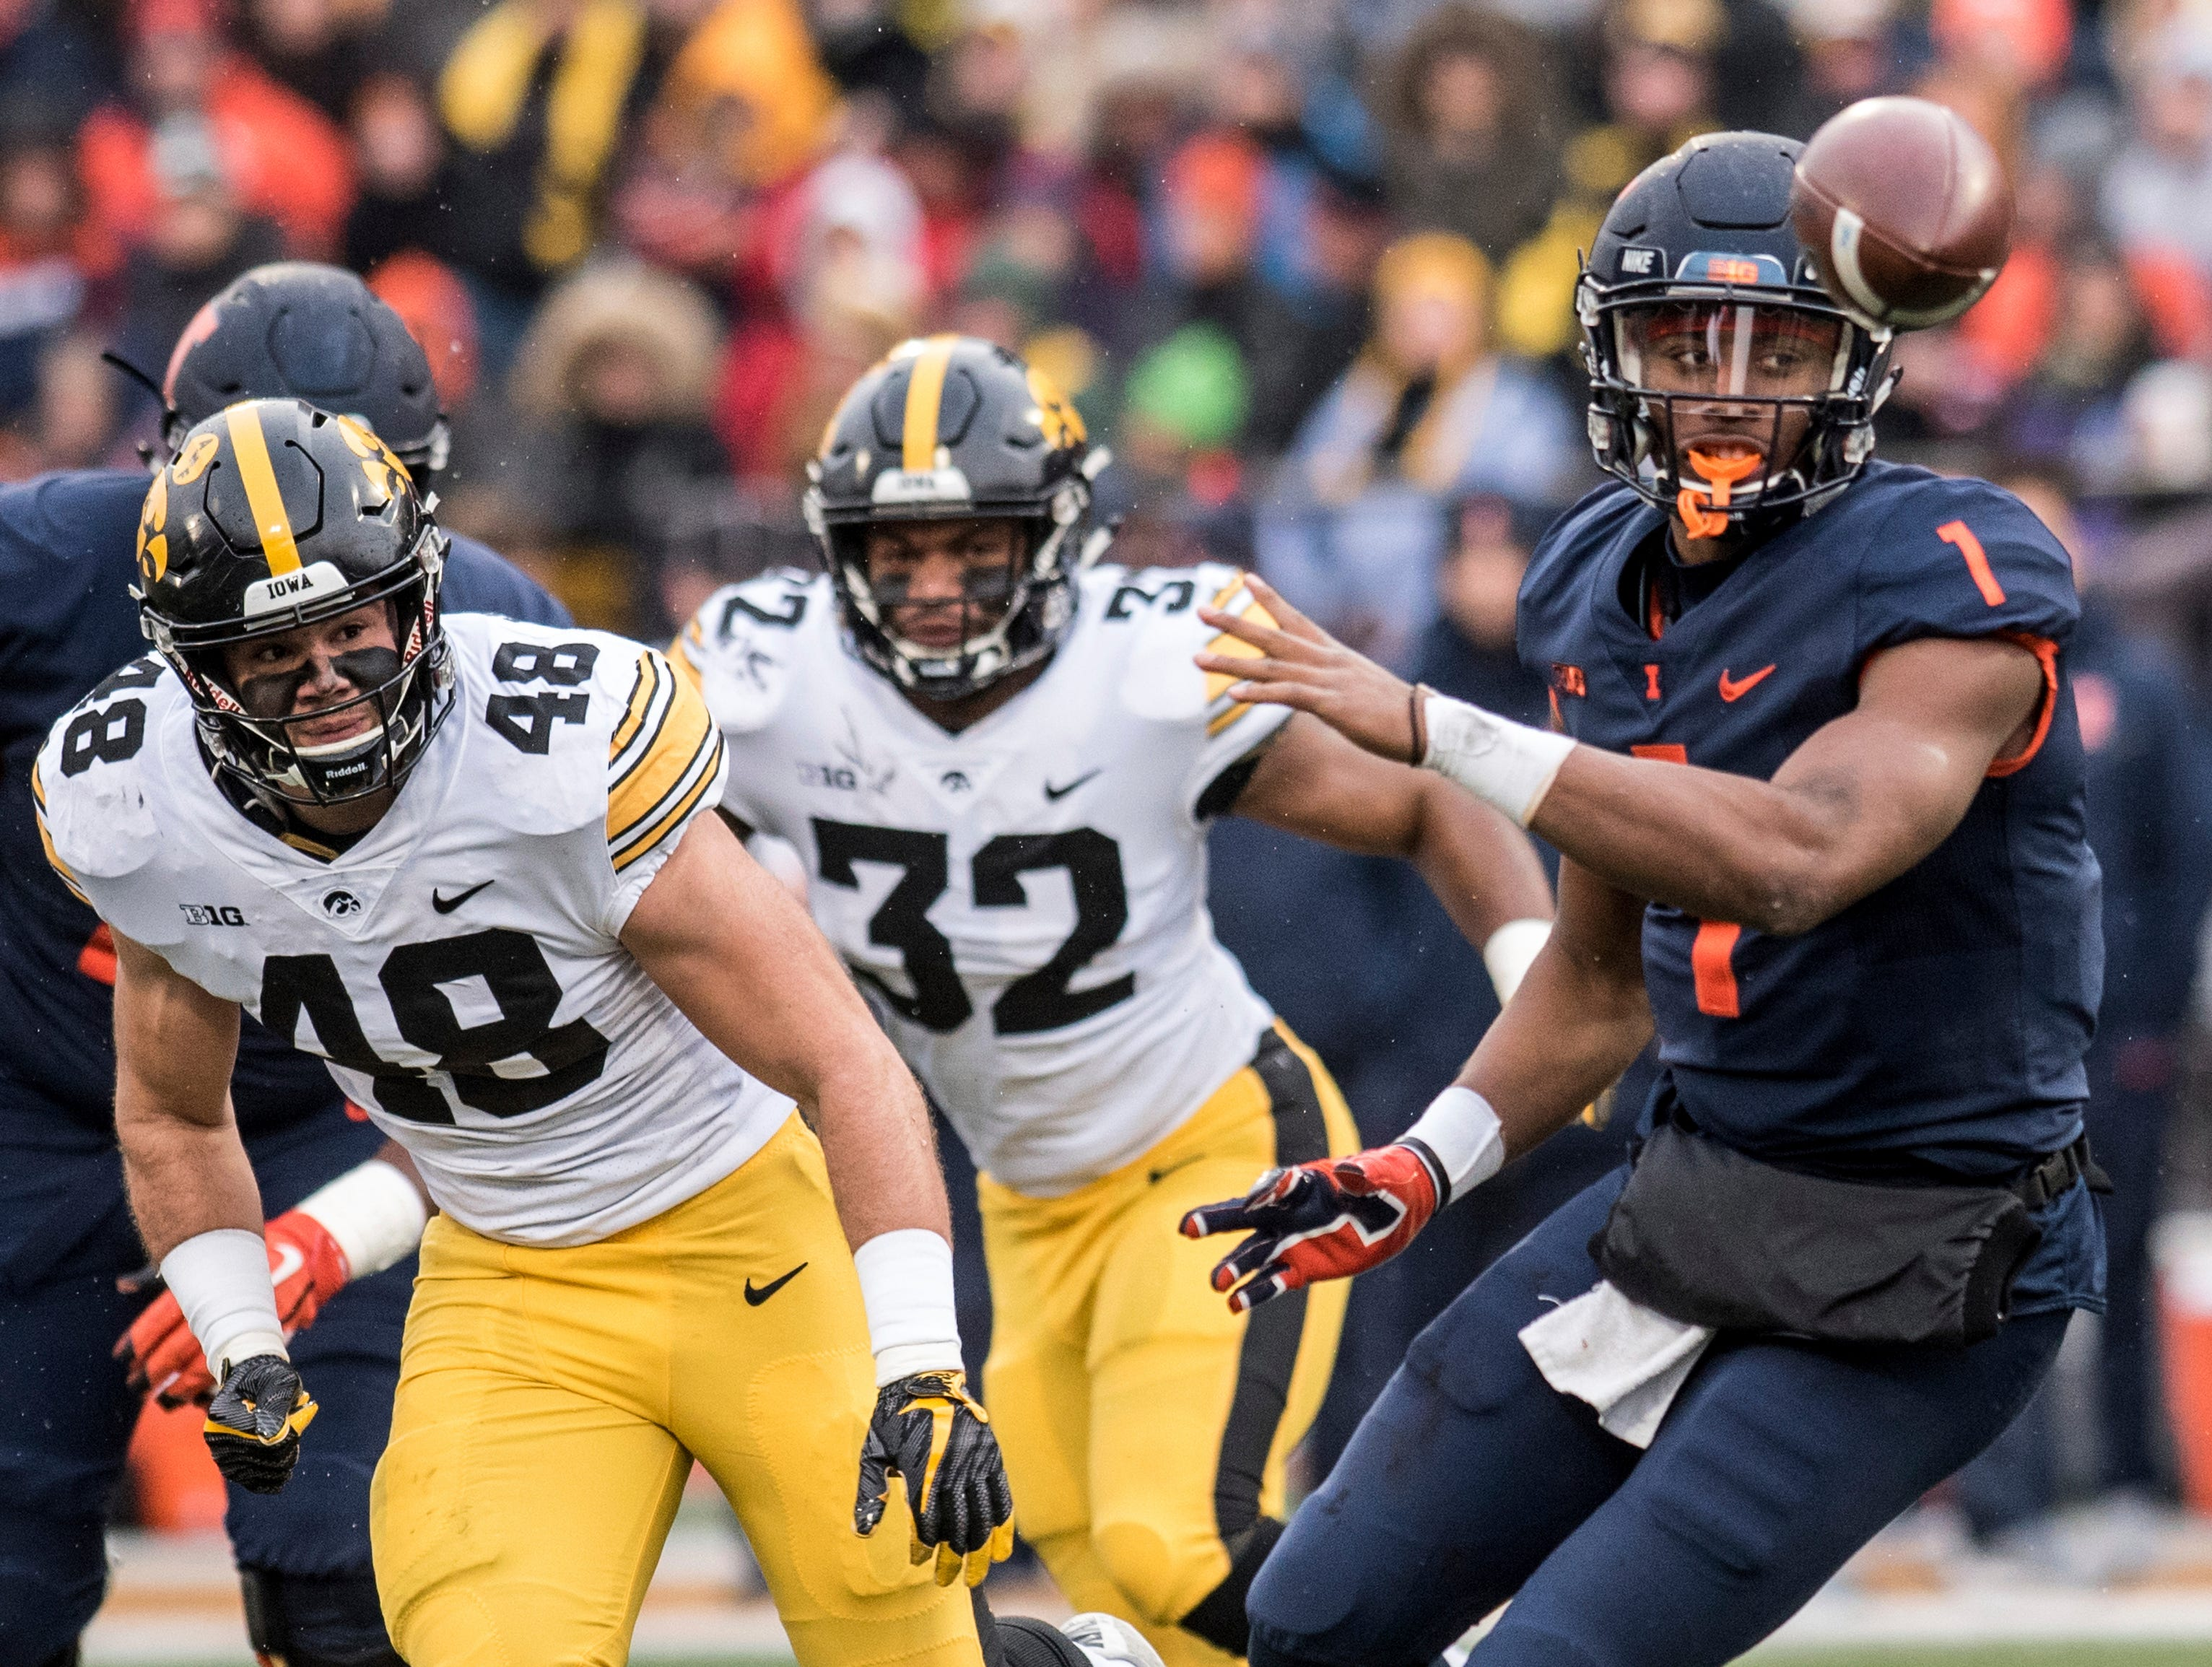 Illinois quarterback A.J. Bush, Jr. (1) throws a shuffle pass as Iowa's Jack Hockaday (48) and Djimon Colbert (32) defend in the first half of a NCAA college football game, Saturday, Nov. 17, 2018, in Champaign, Ill.